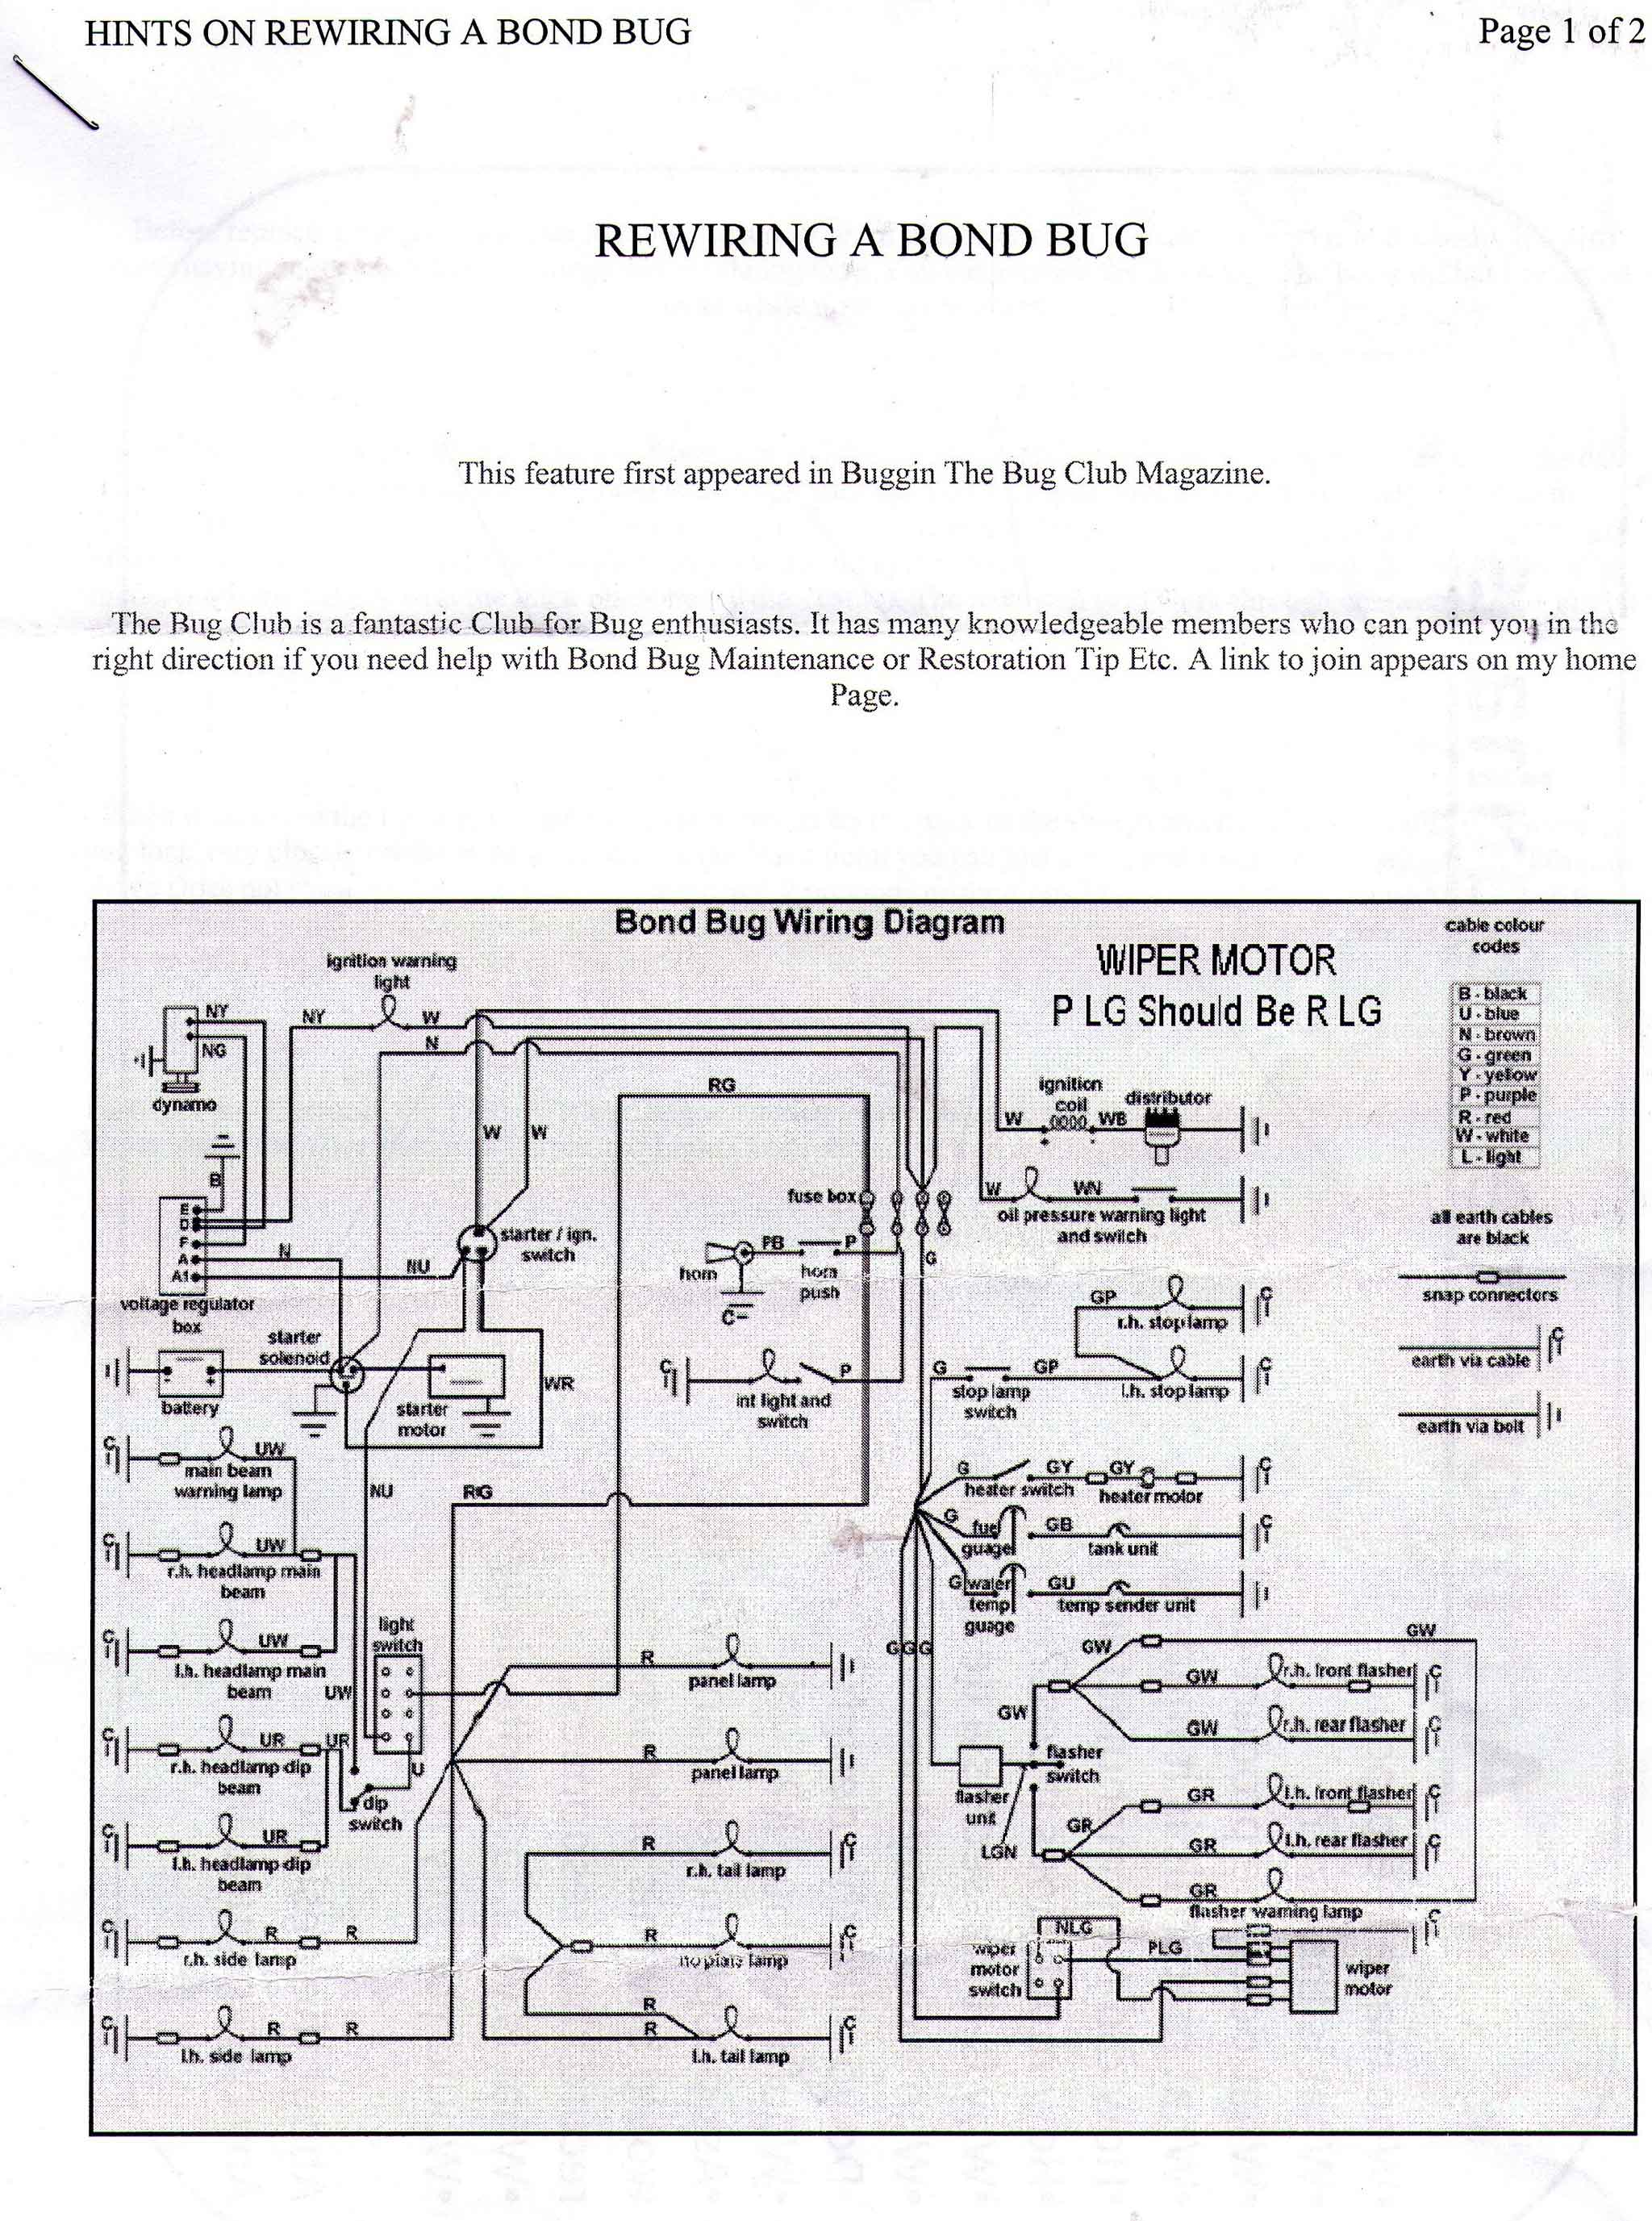 Reliant Spares Wiring Diagrams The Trike Shop Diagram